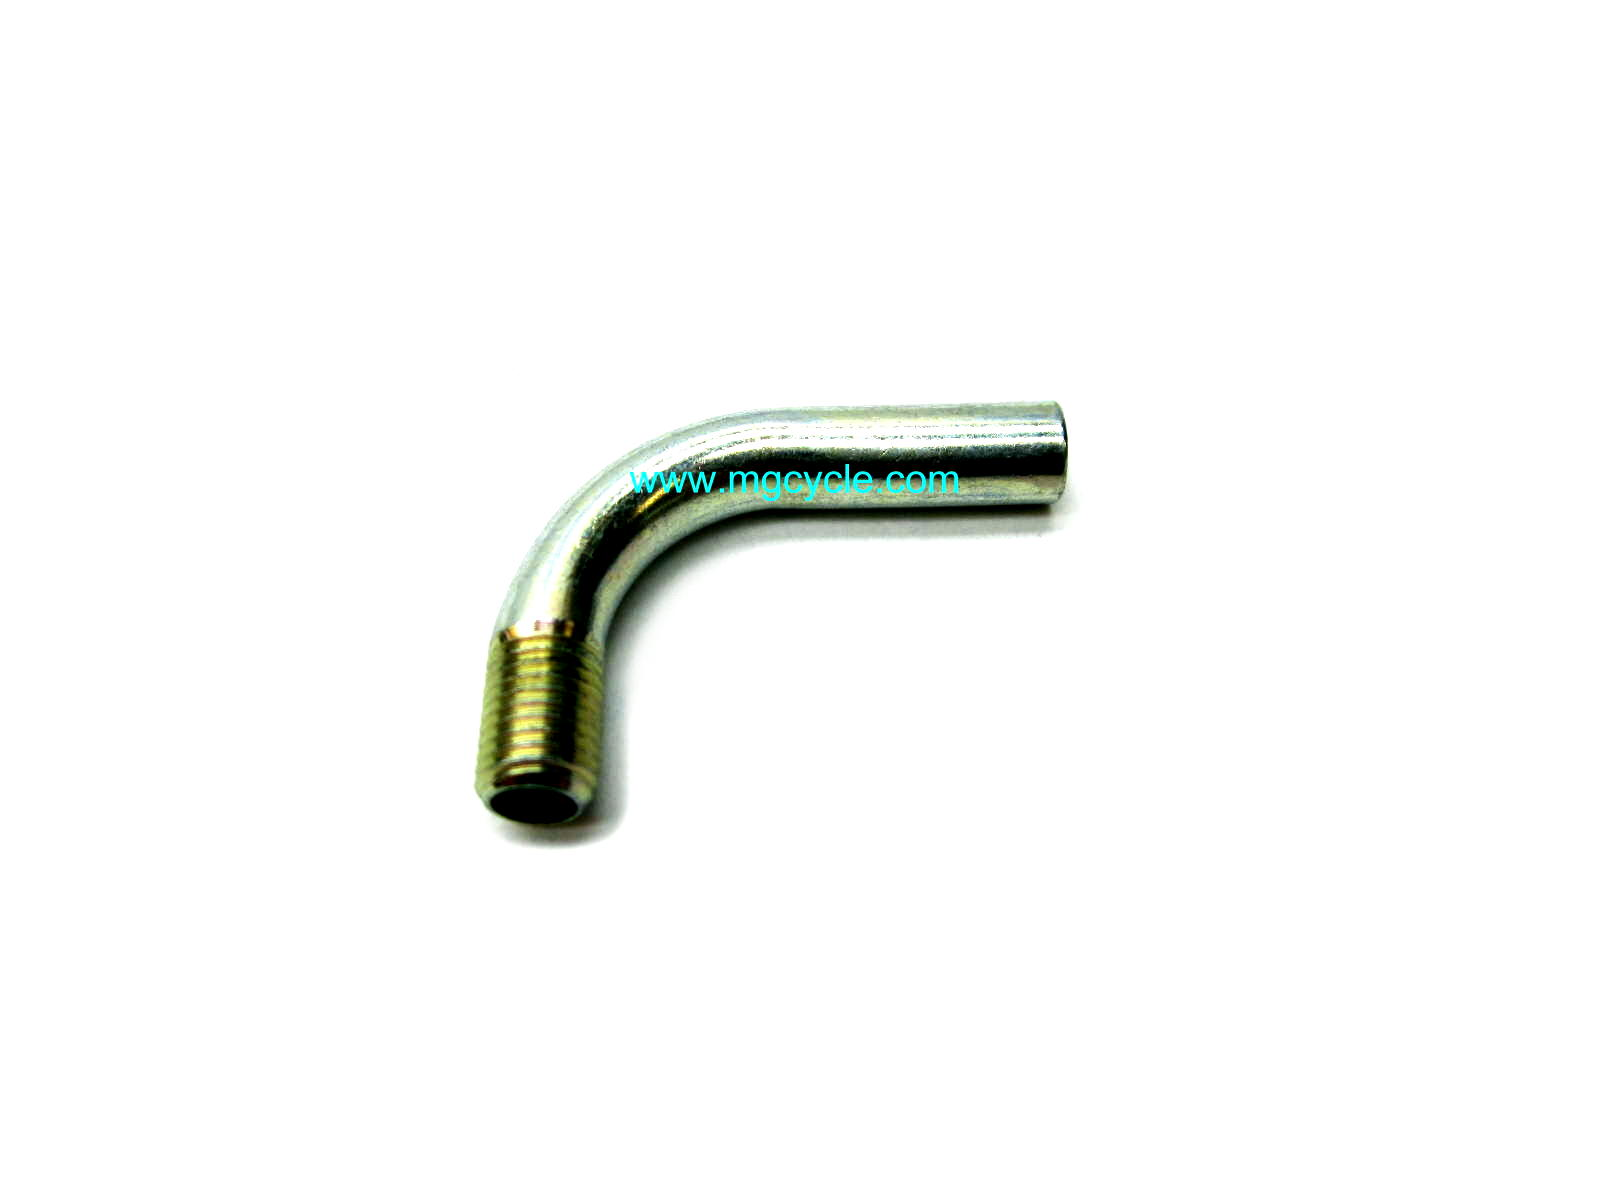 Dellorto 90 degree cable elbow